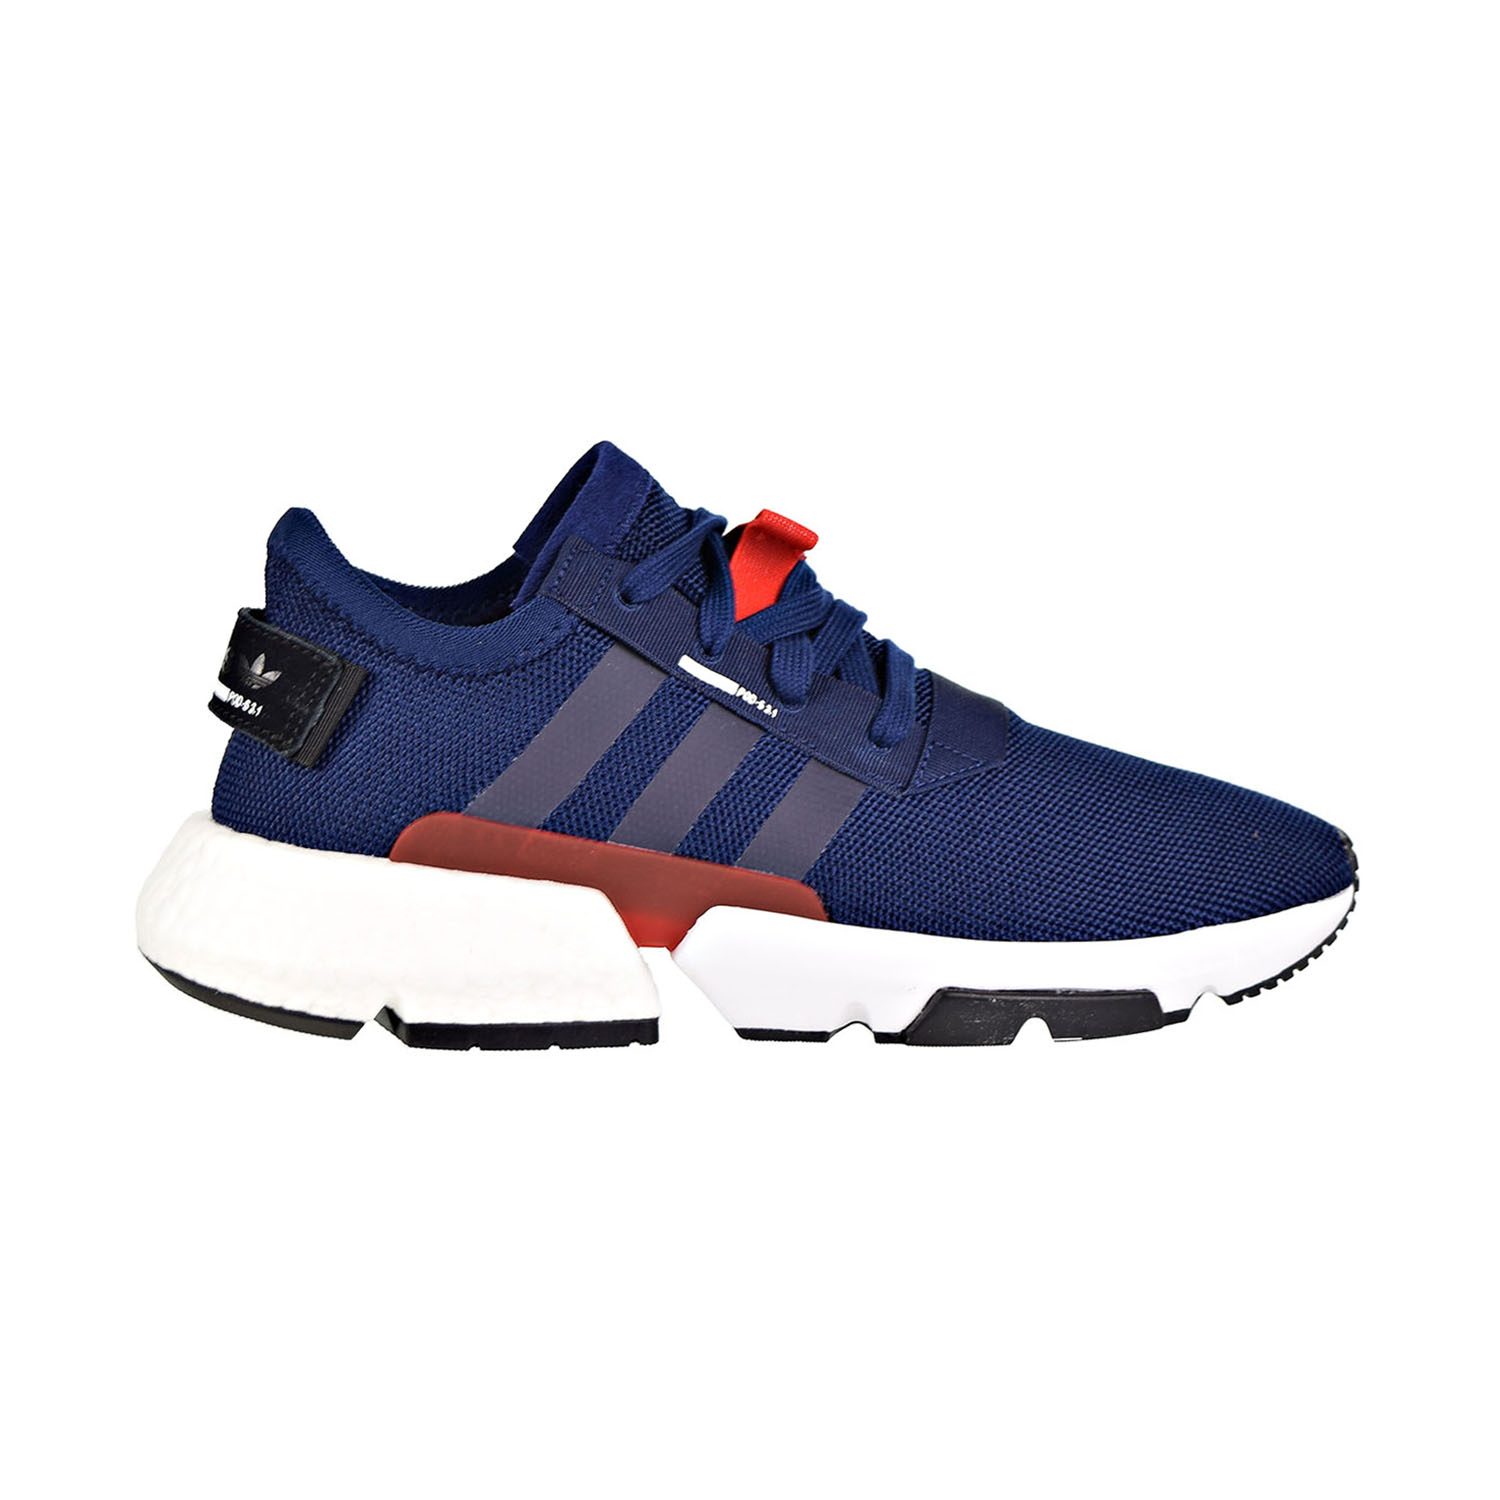 7f959d62 Details about Adidas POD-S3.1 Men's Shoes Dark Blue/Red G26512